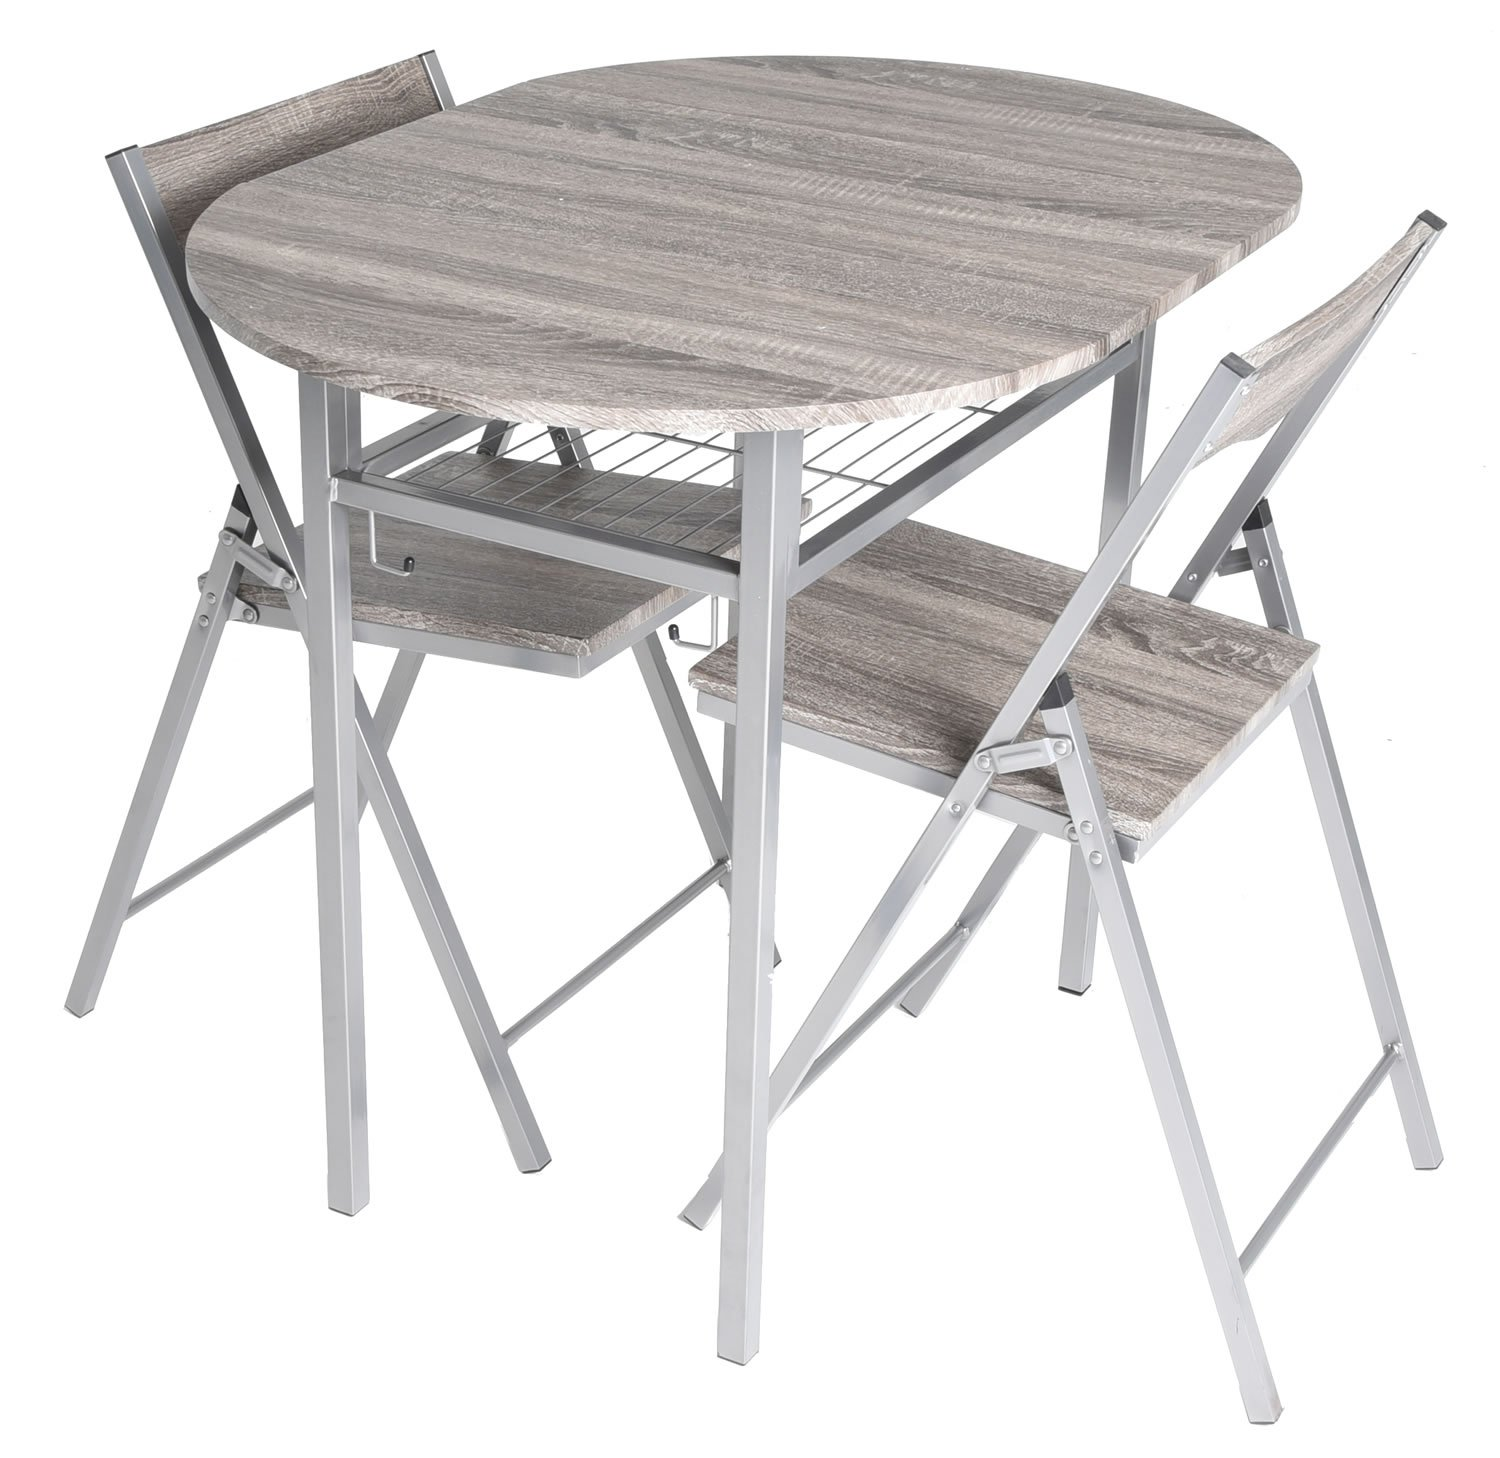 Zenvida 3 Piece Wood Drop Leaf Breakfast Table and 2 Folding Chairs Rustic Grey